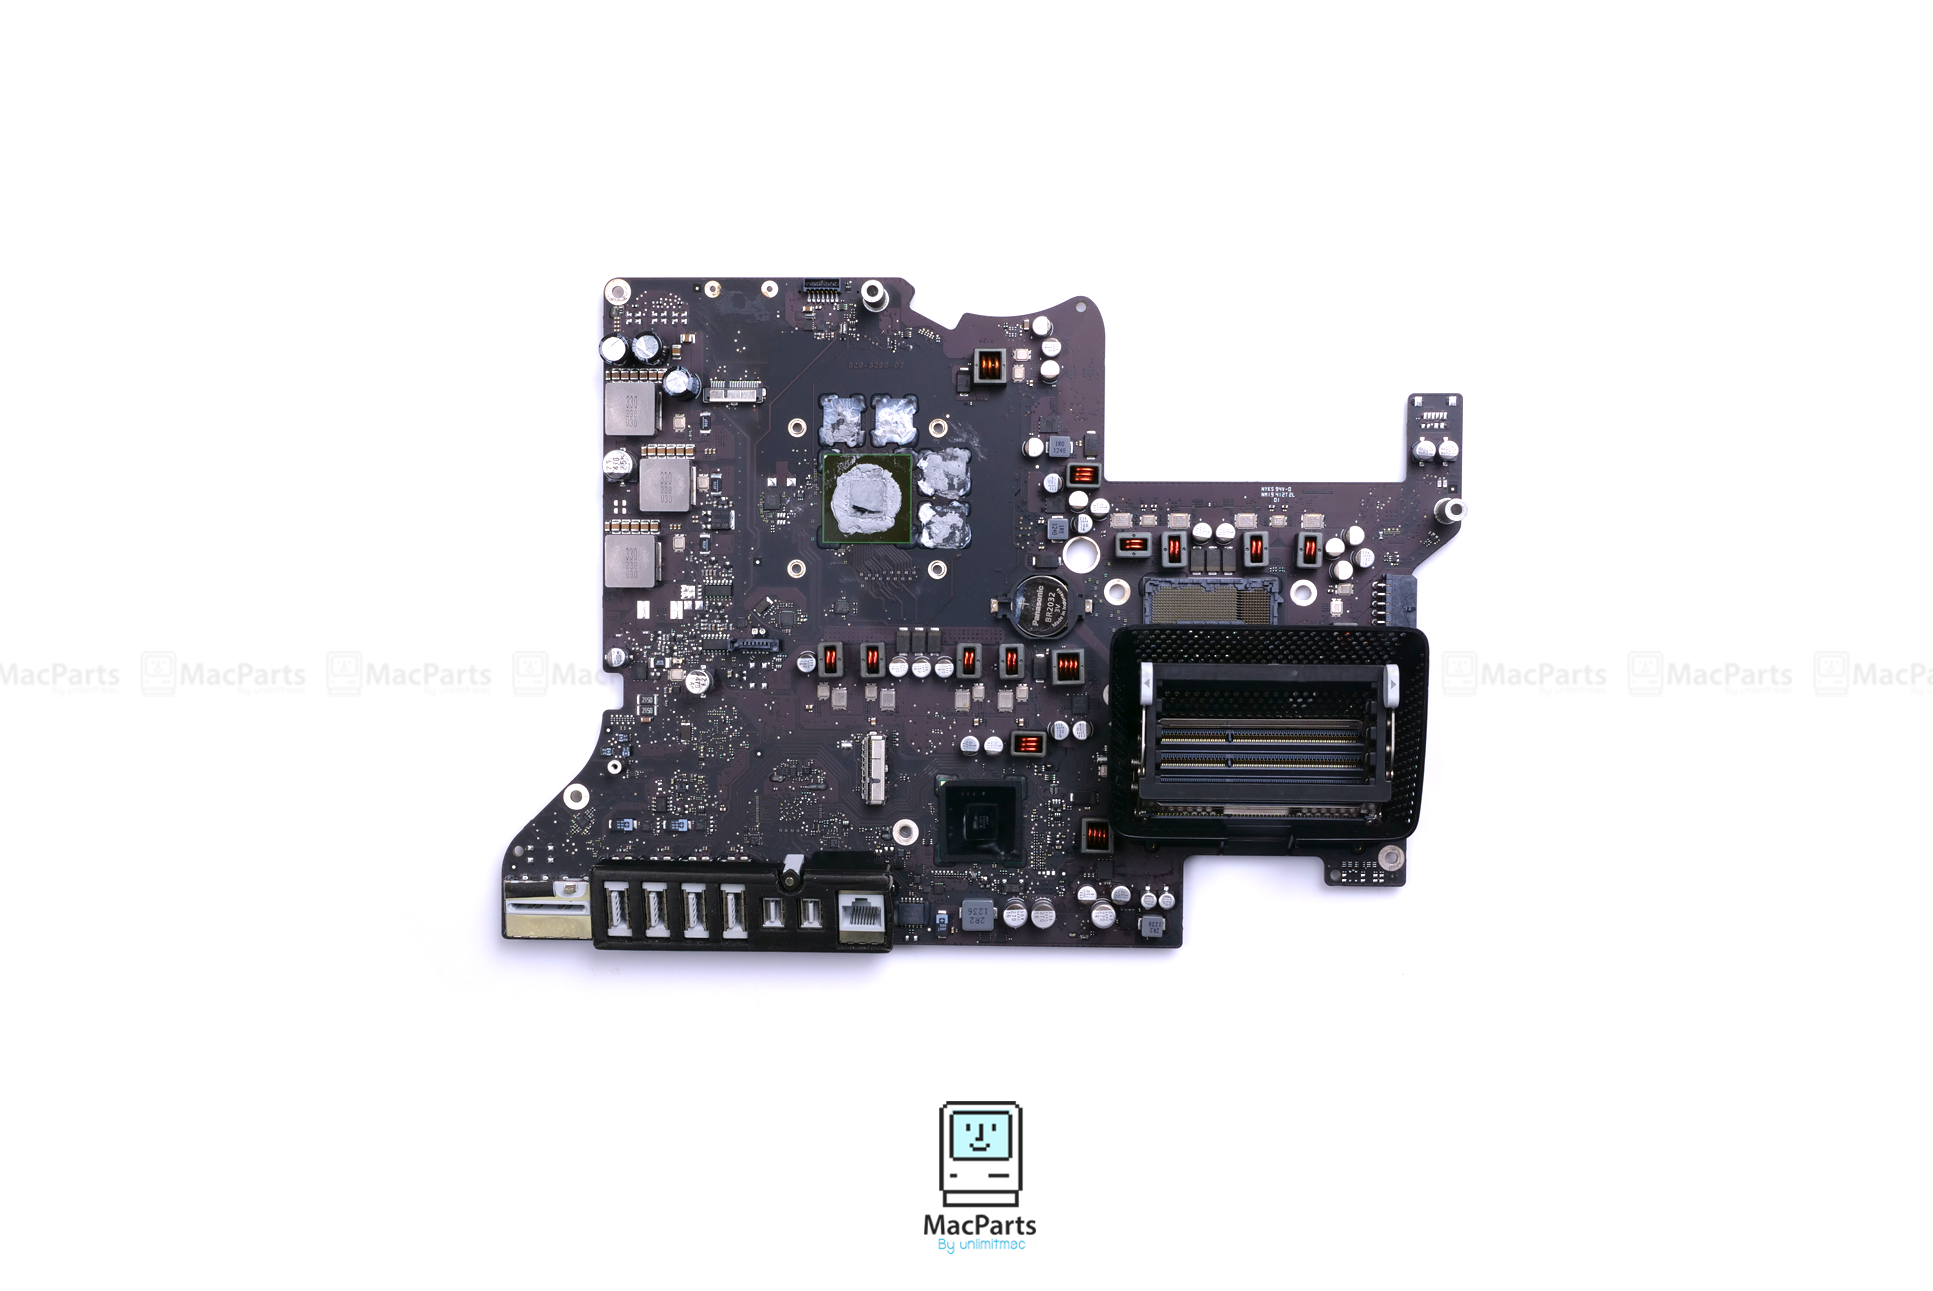 "661-7156 MLB,2.9 GHZ,I5,QC 512 MB GDDR For iMac 27"" Late 2012"